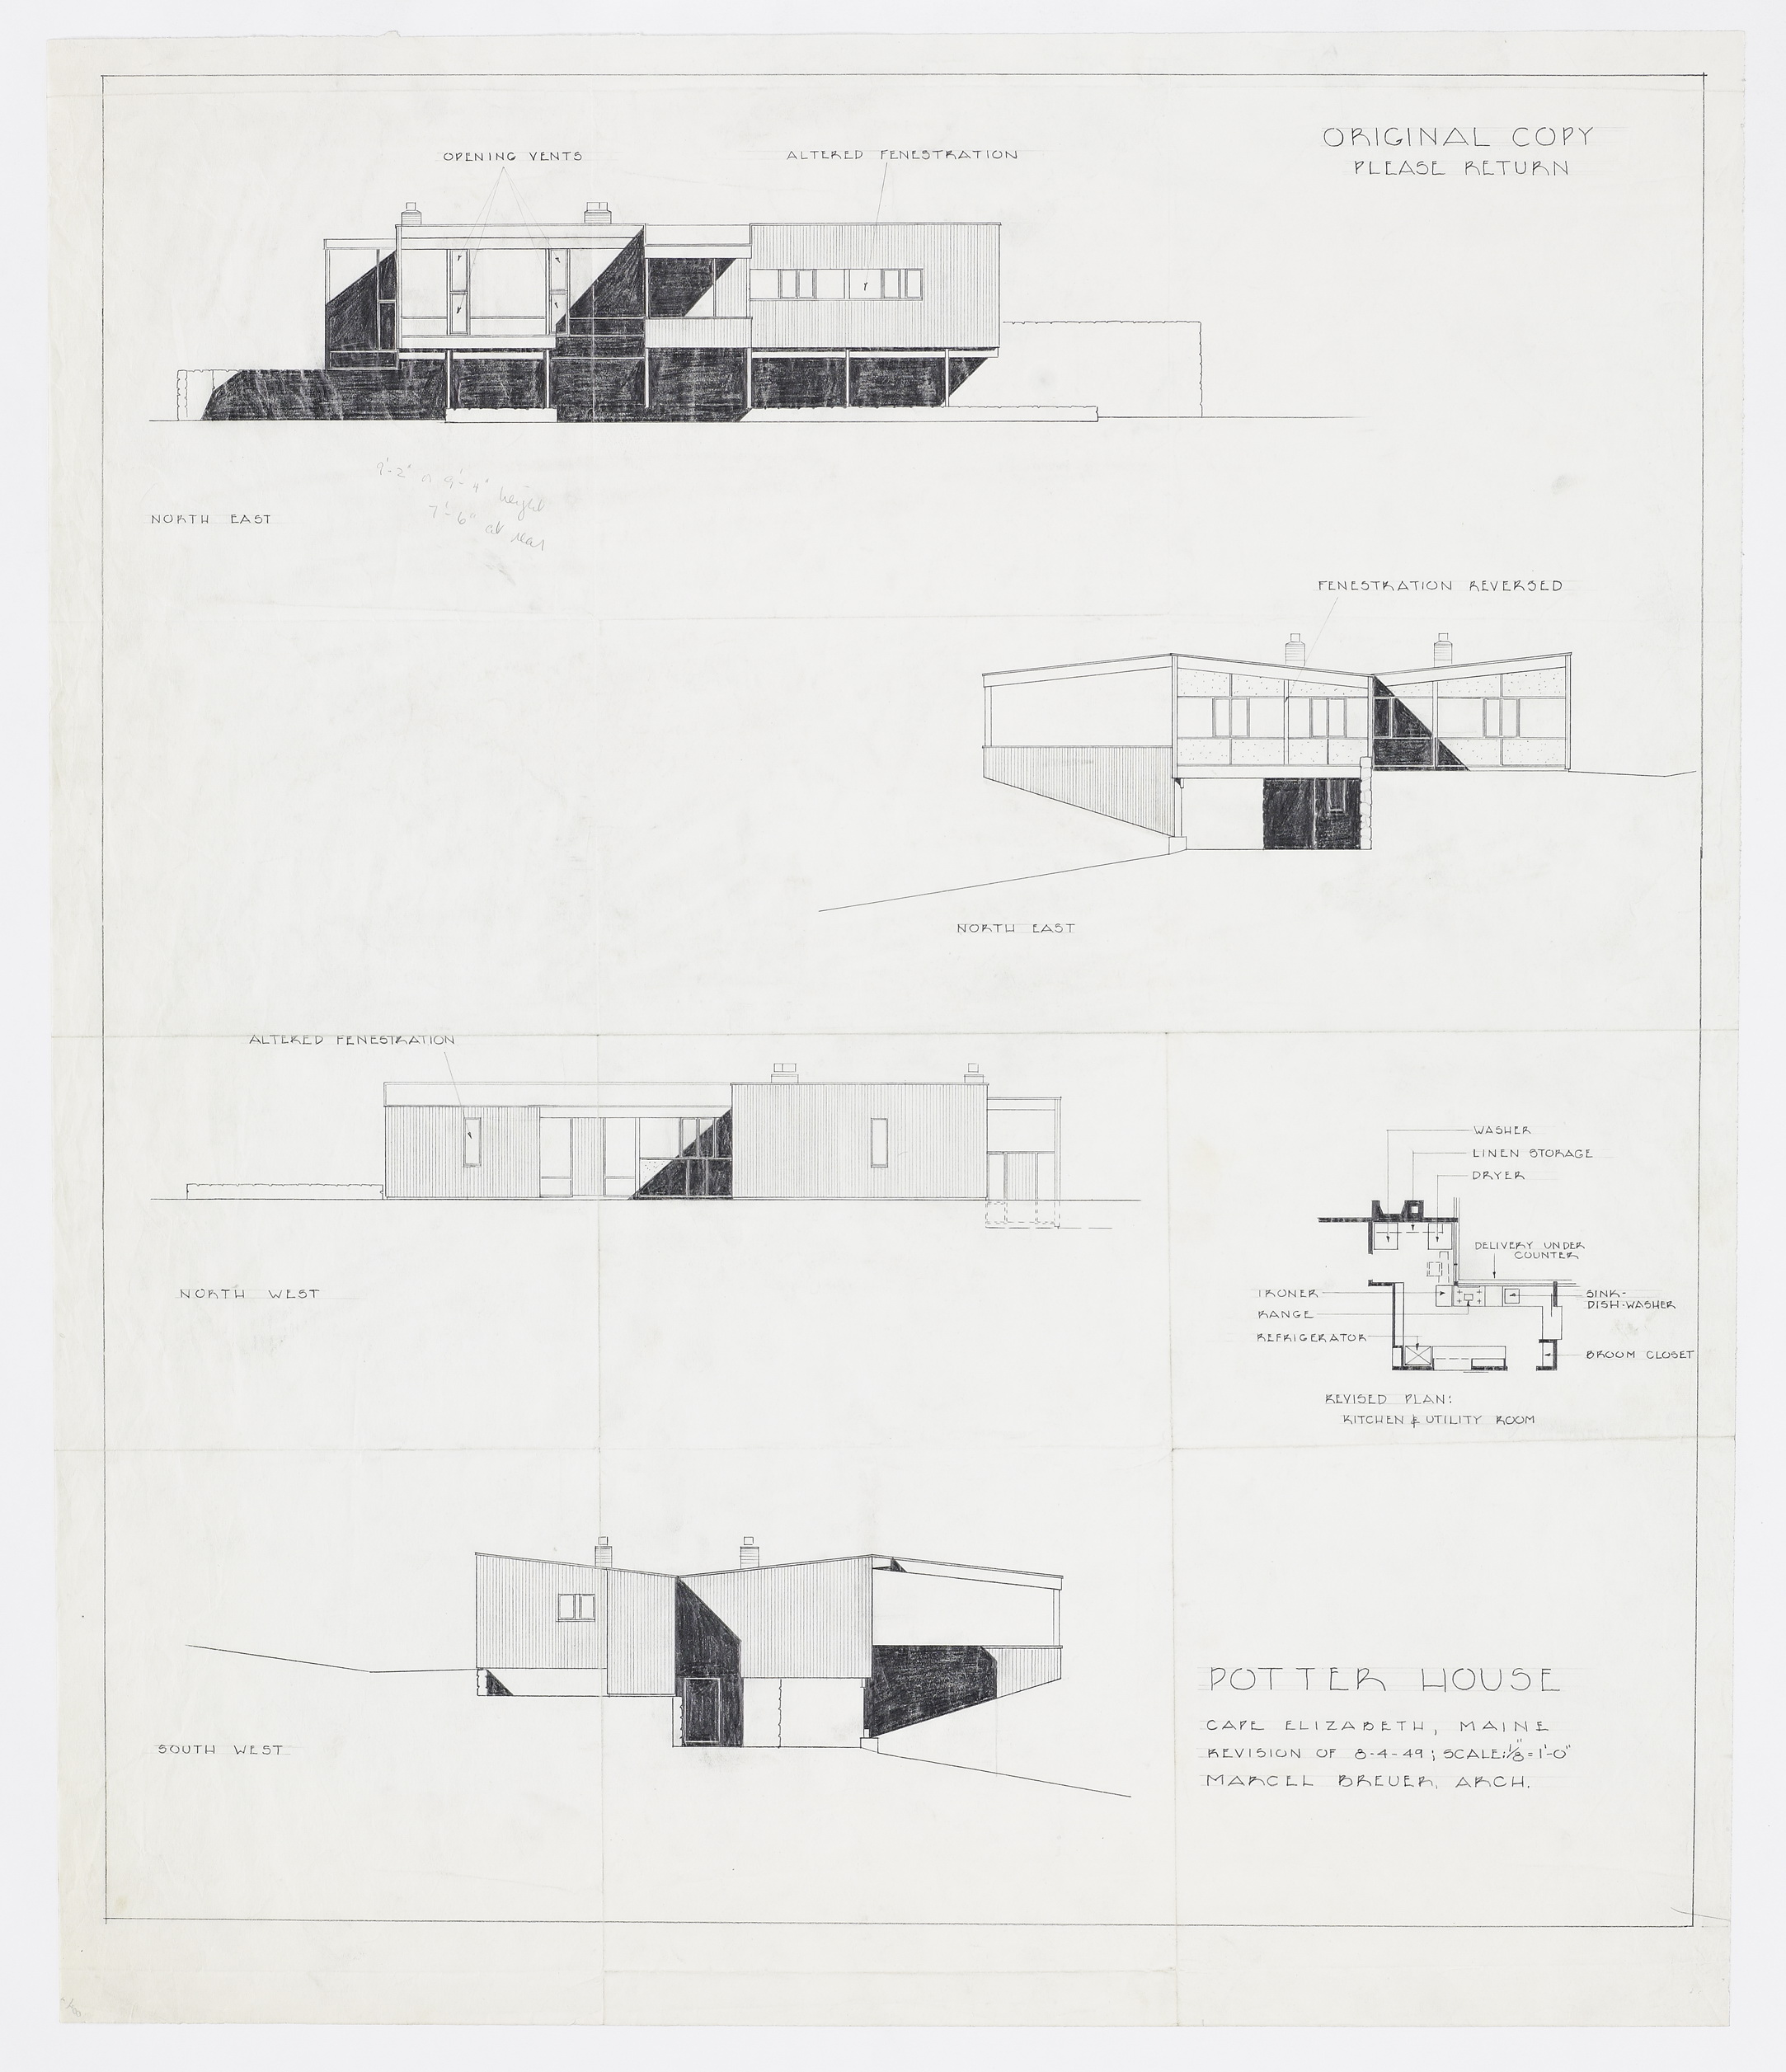 Chase brass and copper company addition turner construction company - Potter House Project Type Residential Years 1948 1949